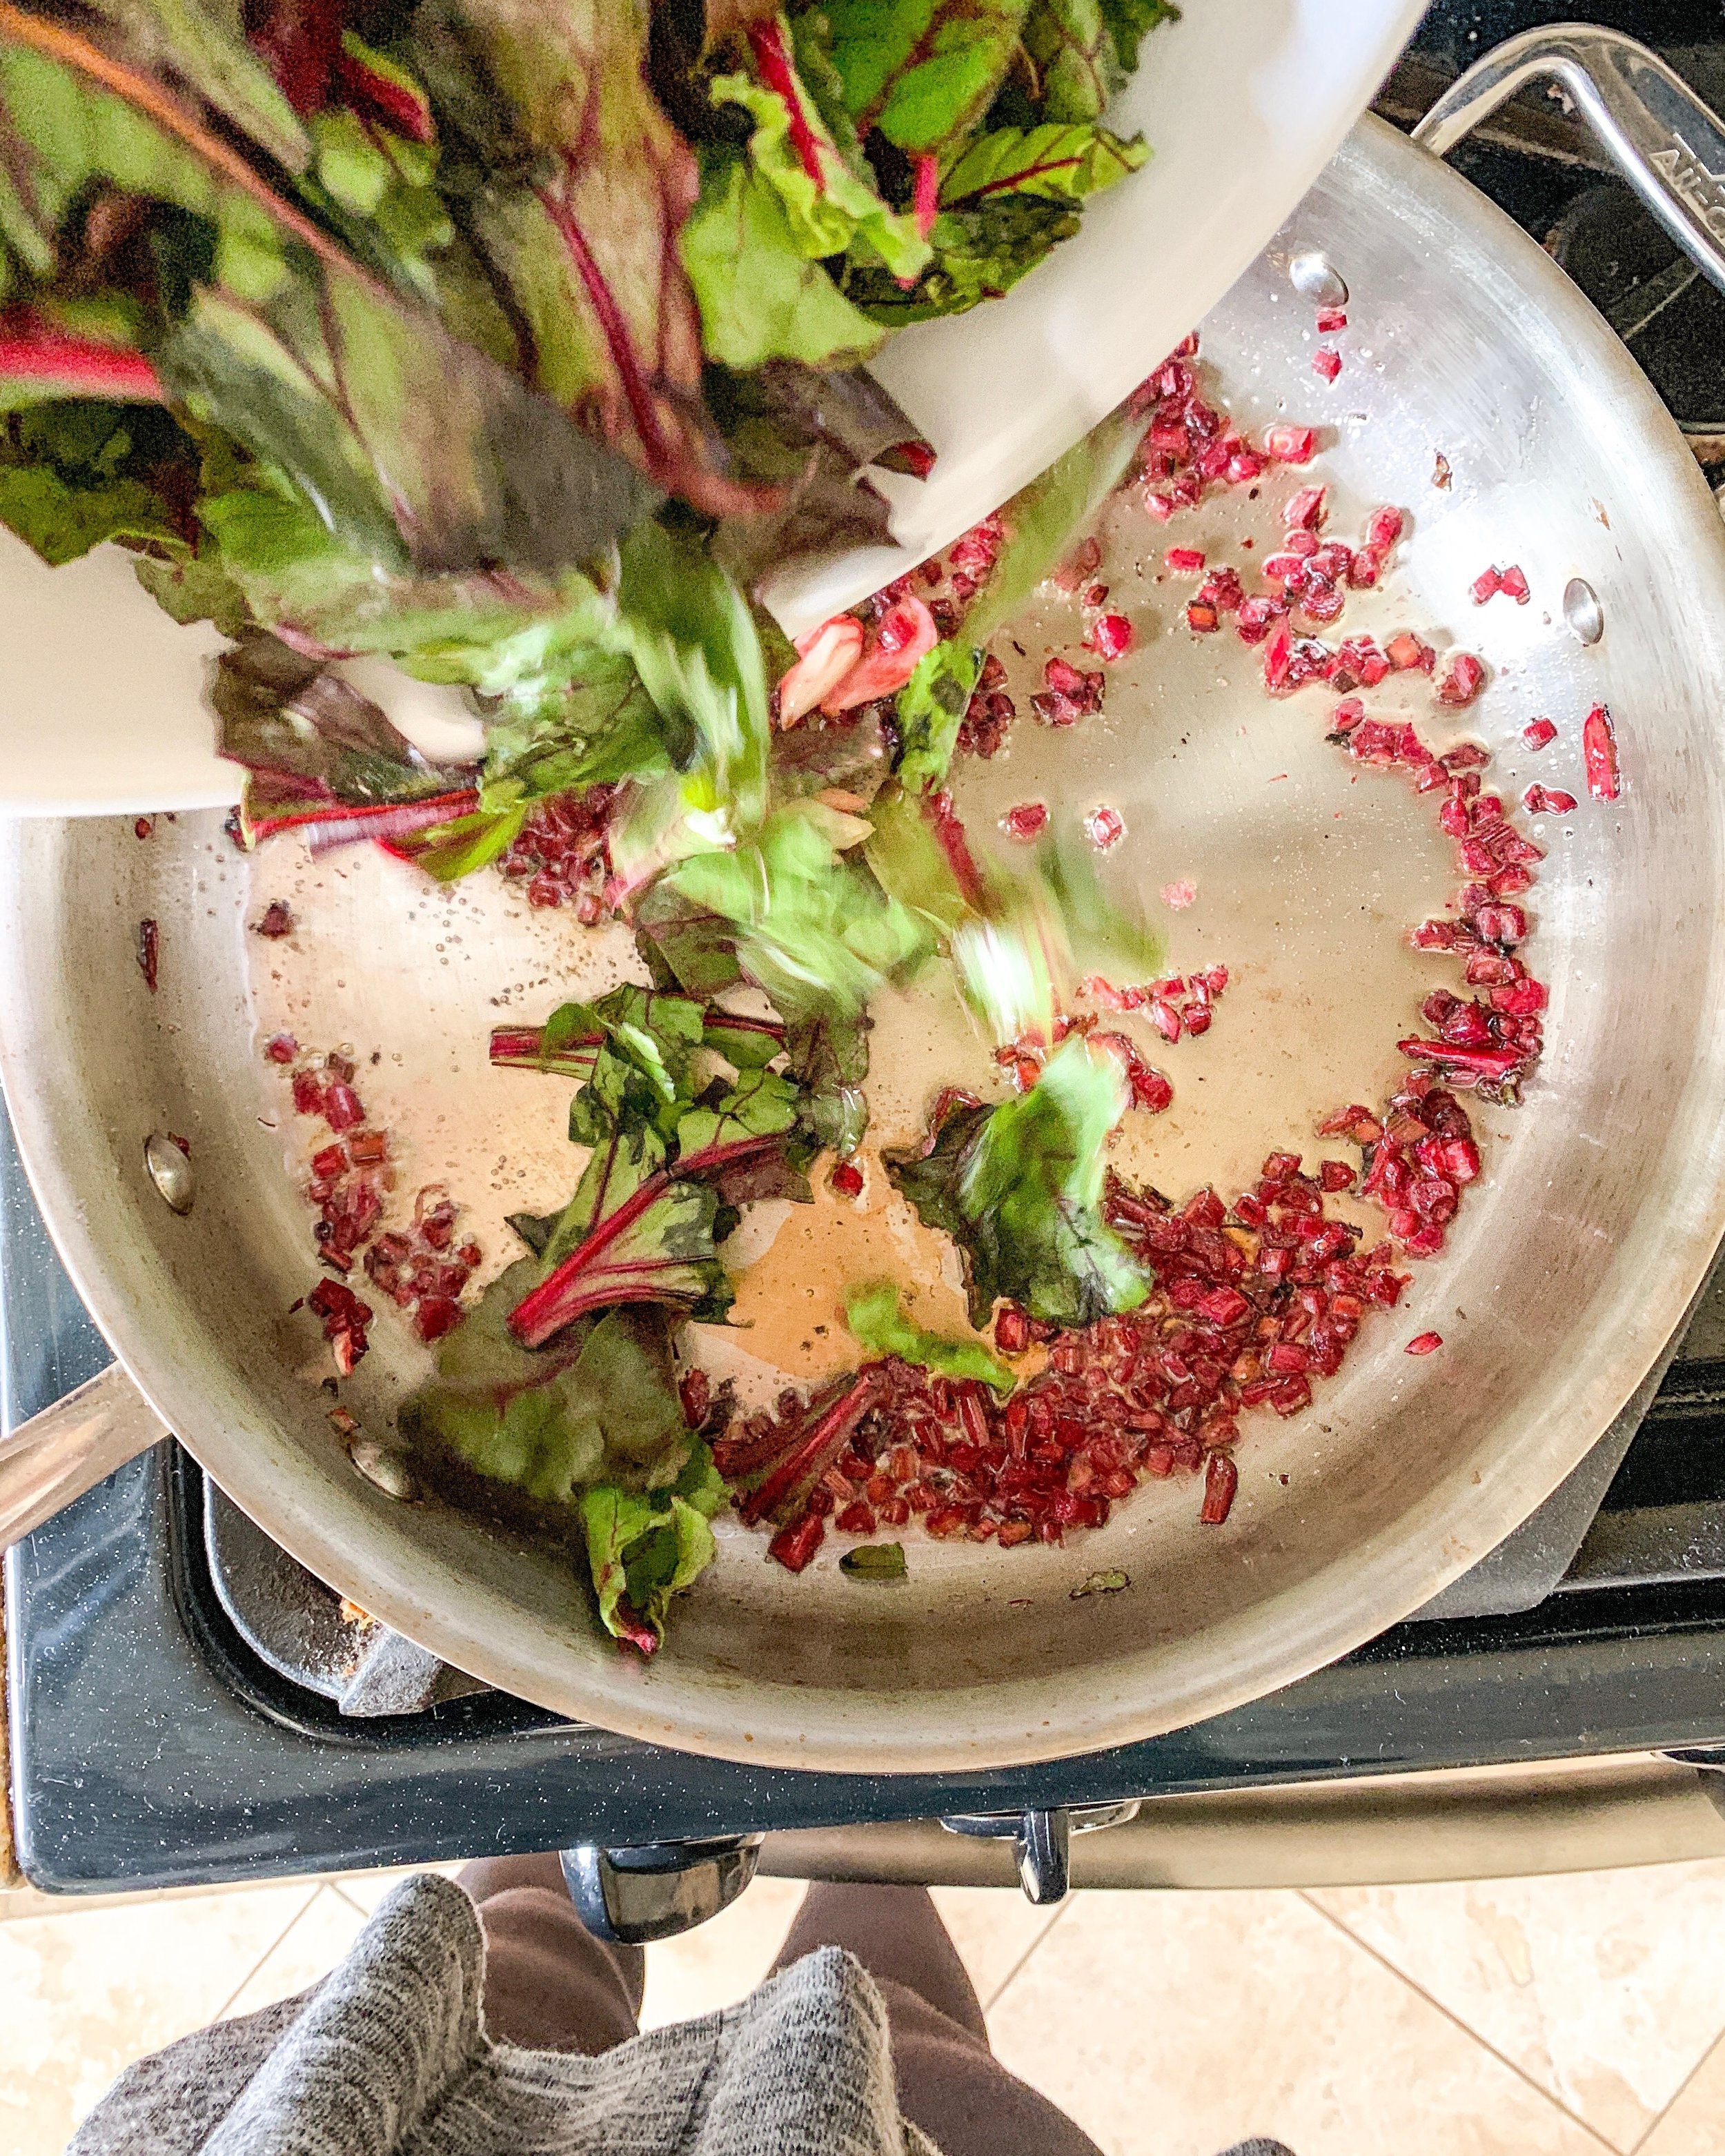 adding+beet+greens+to+a+saute+pan.jpg